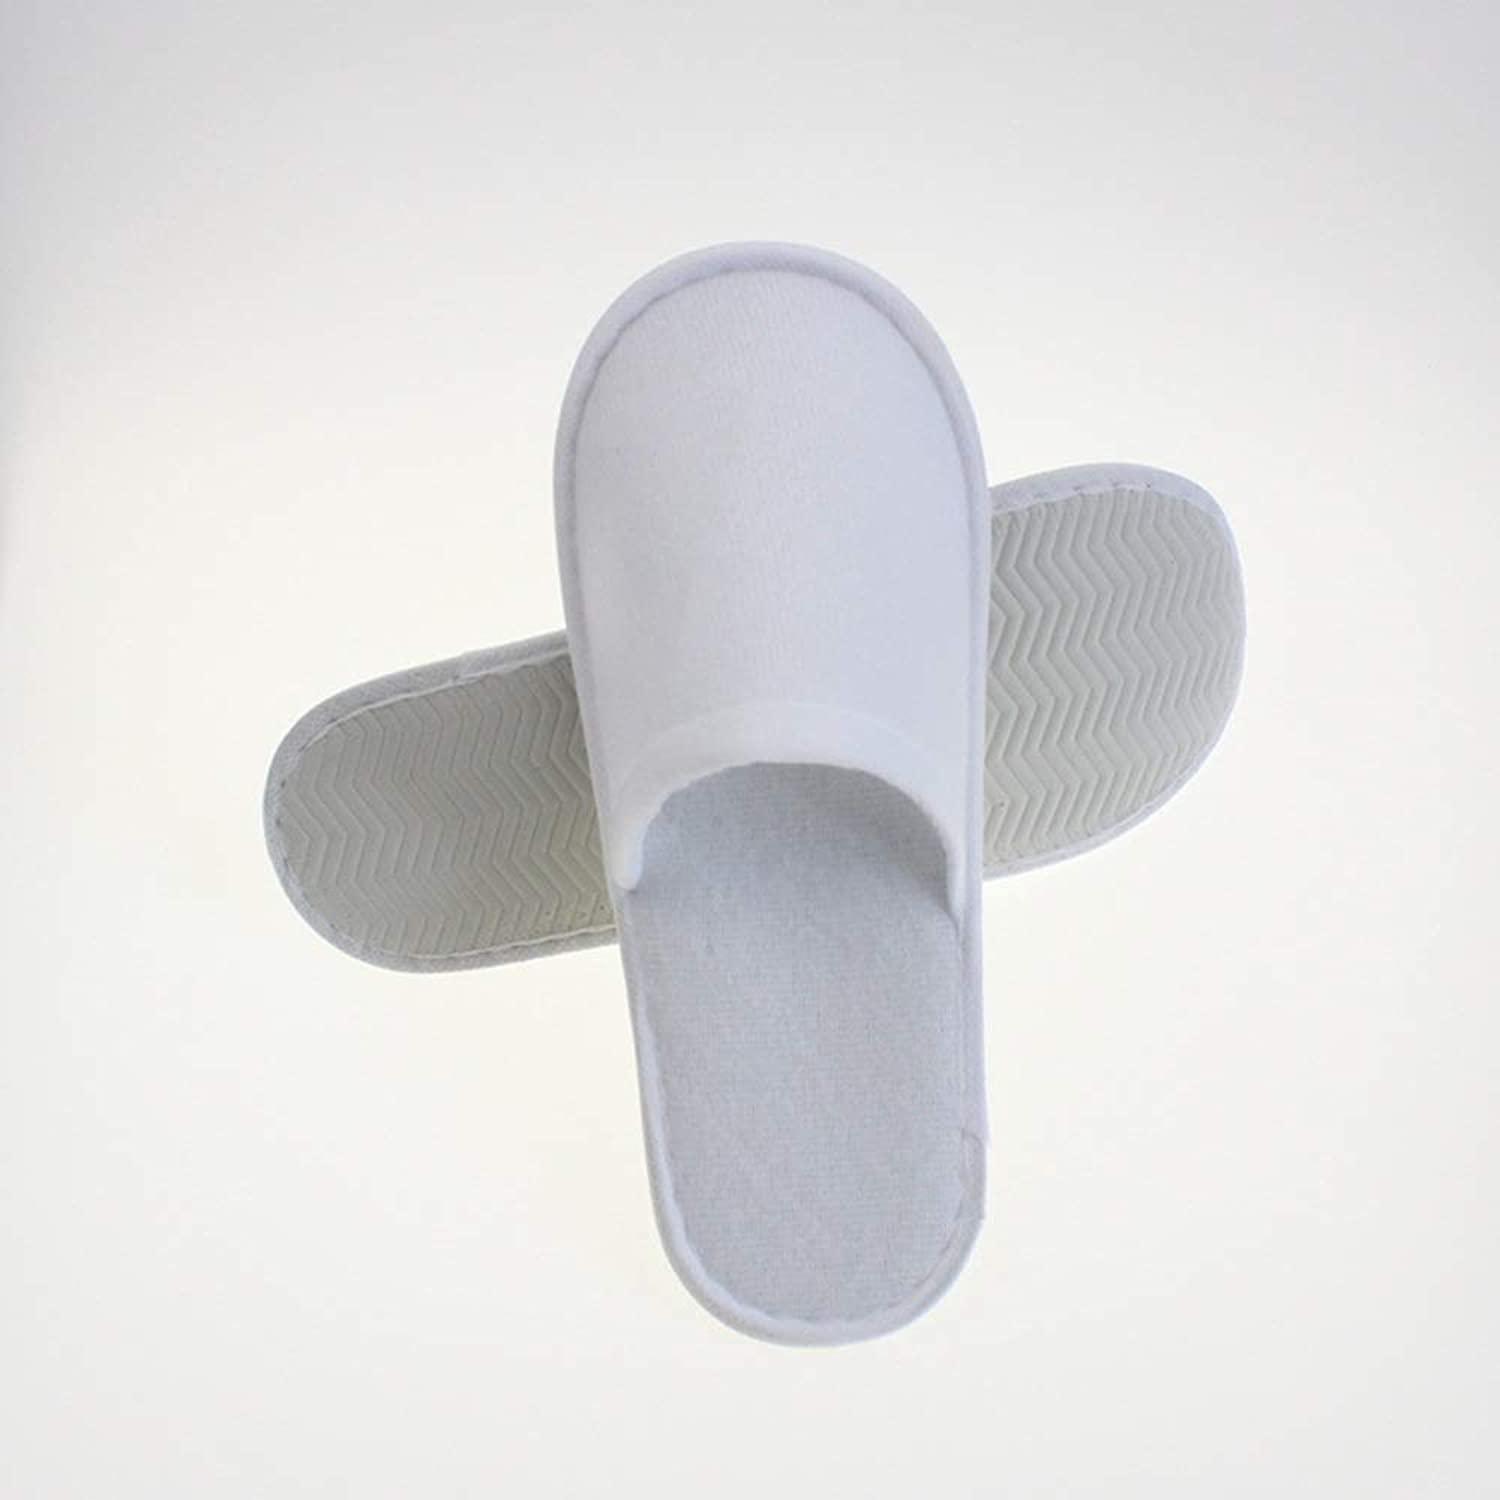 Luxury Thickening Closed Toe Disposable Spa Hotel Slippers Individually for Men and Women 24 50 100 Pac (Edition   24 Pairs)